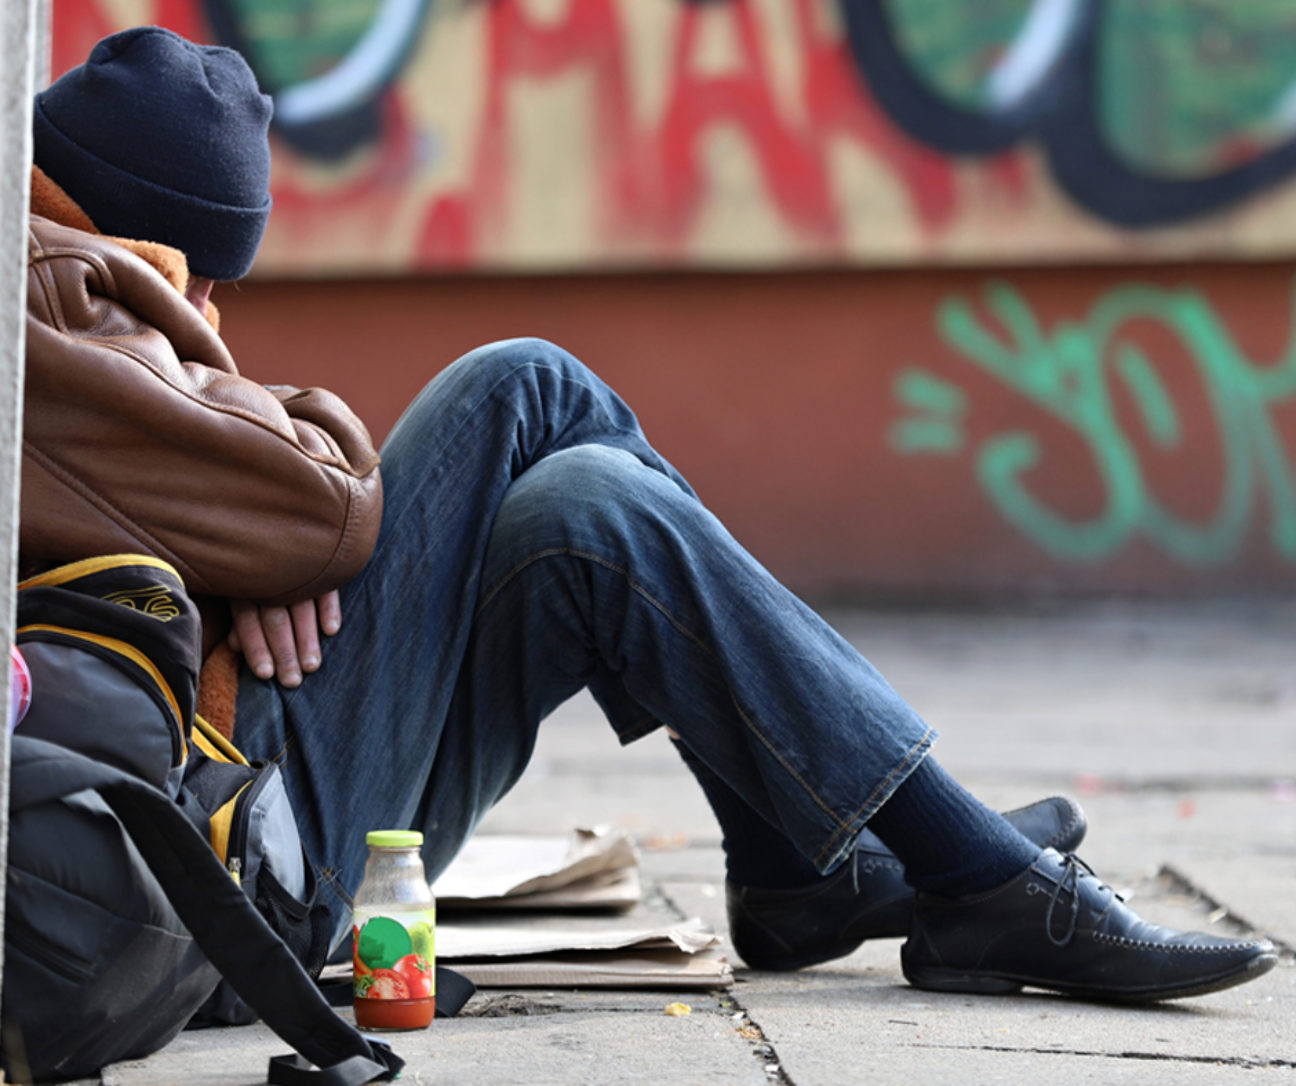 Leading Homeless Charities Tell Stormont Facebook Image